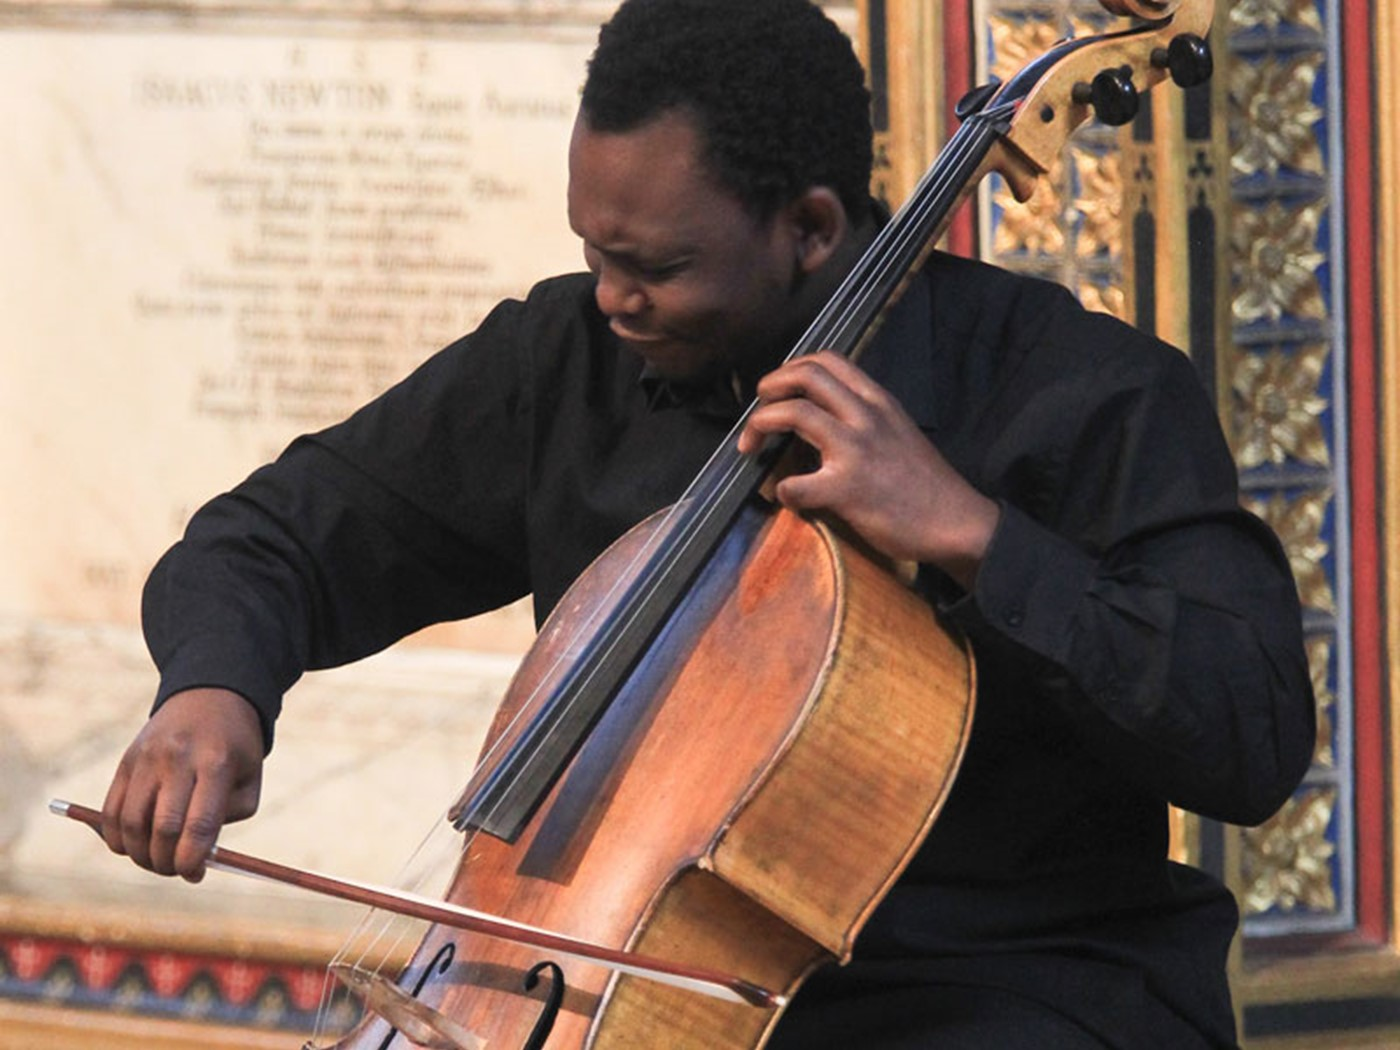 Abel Selaocoe plays two movements from Cello Suite I, Op 72 by Britten